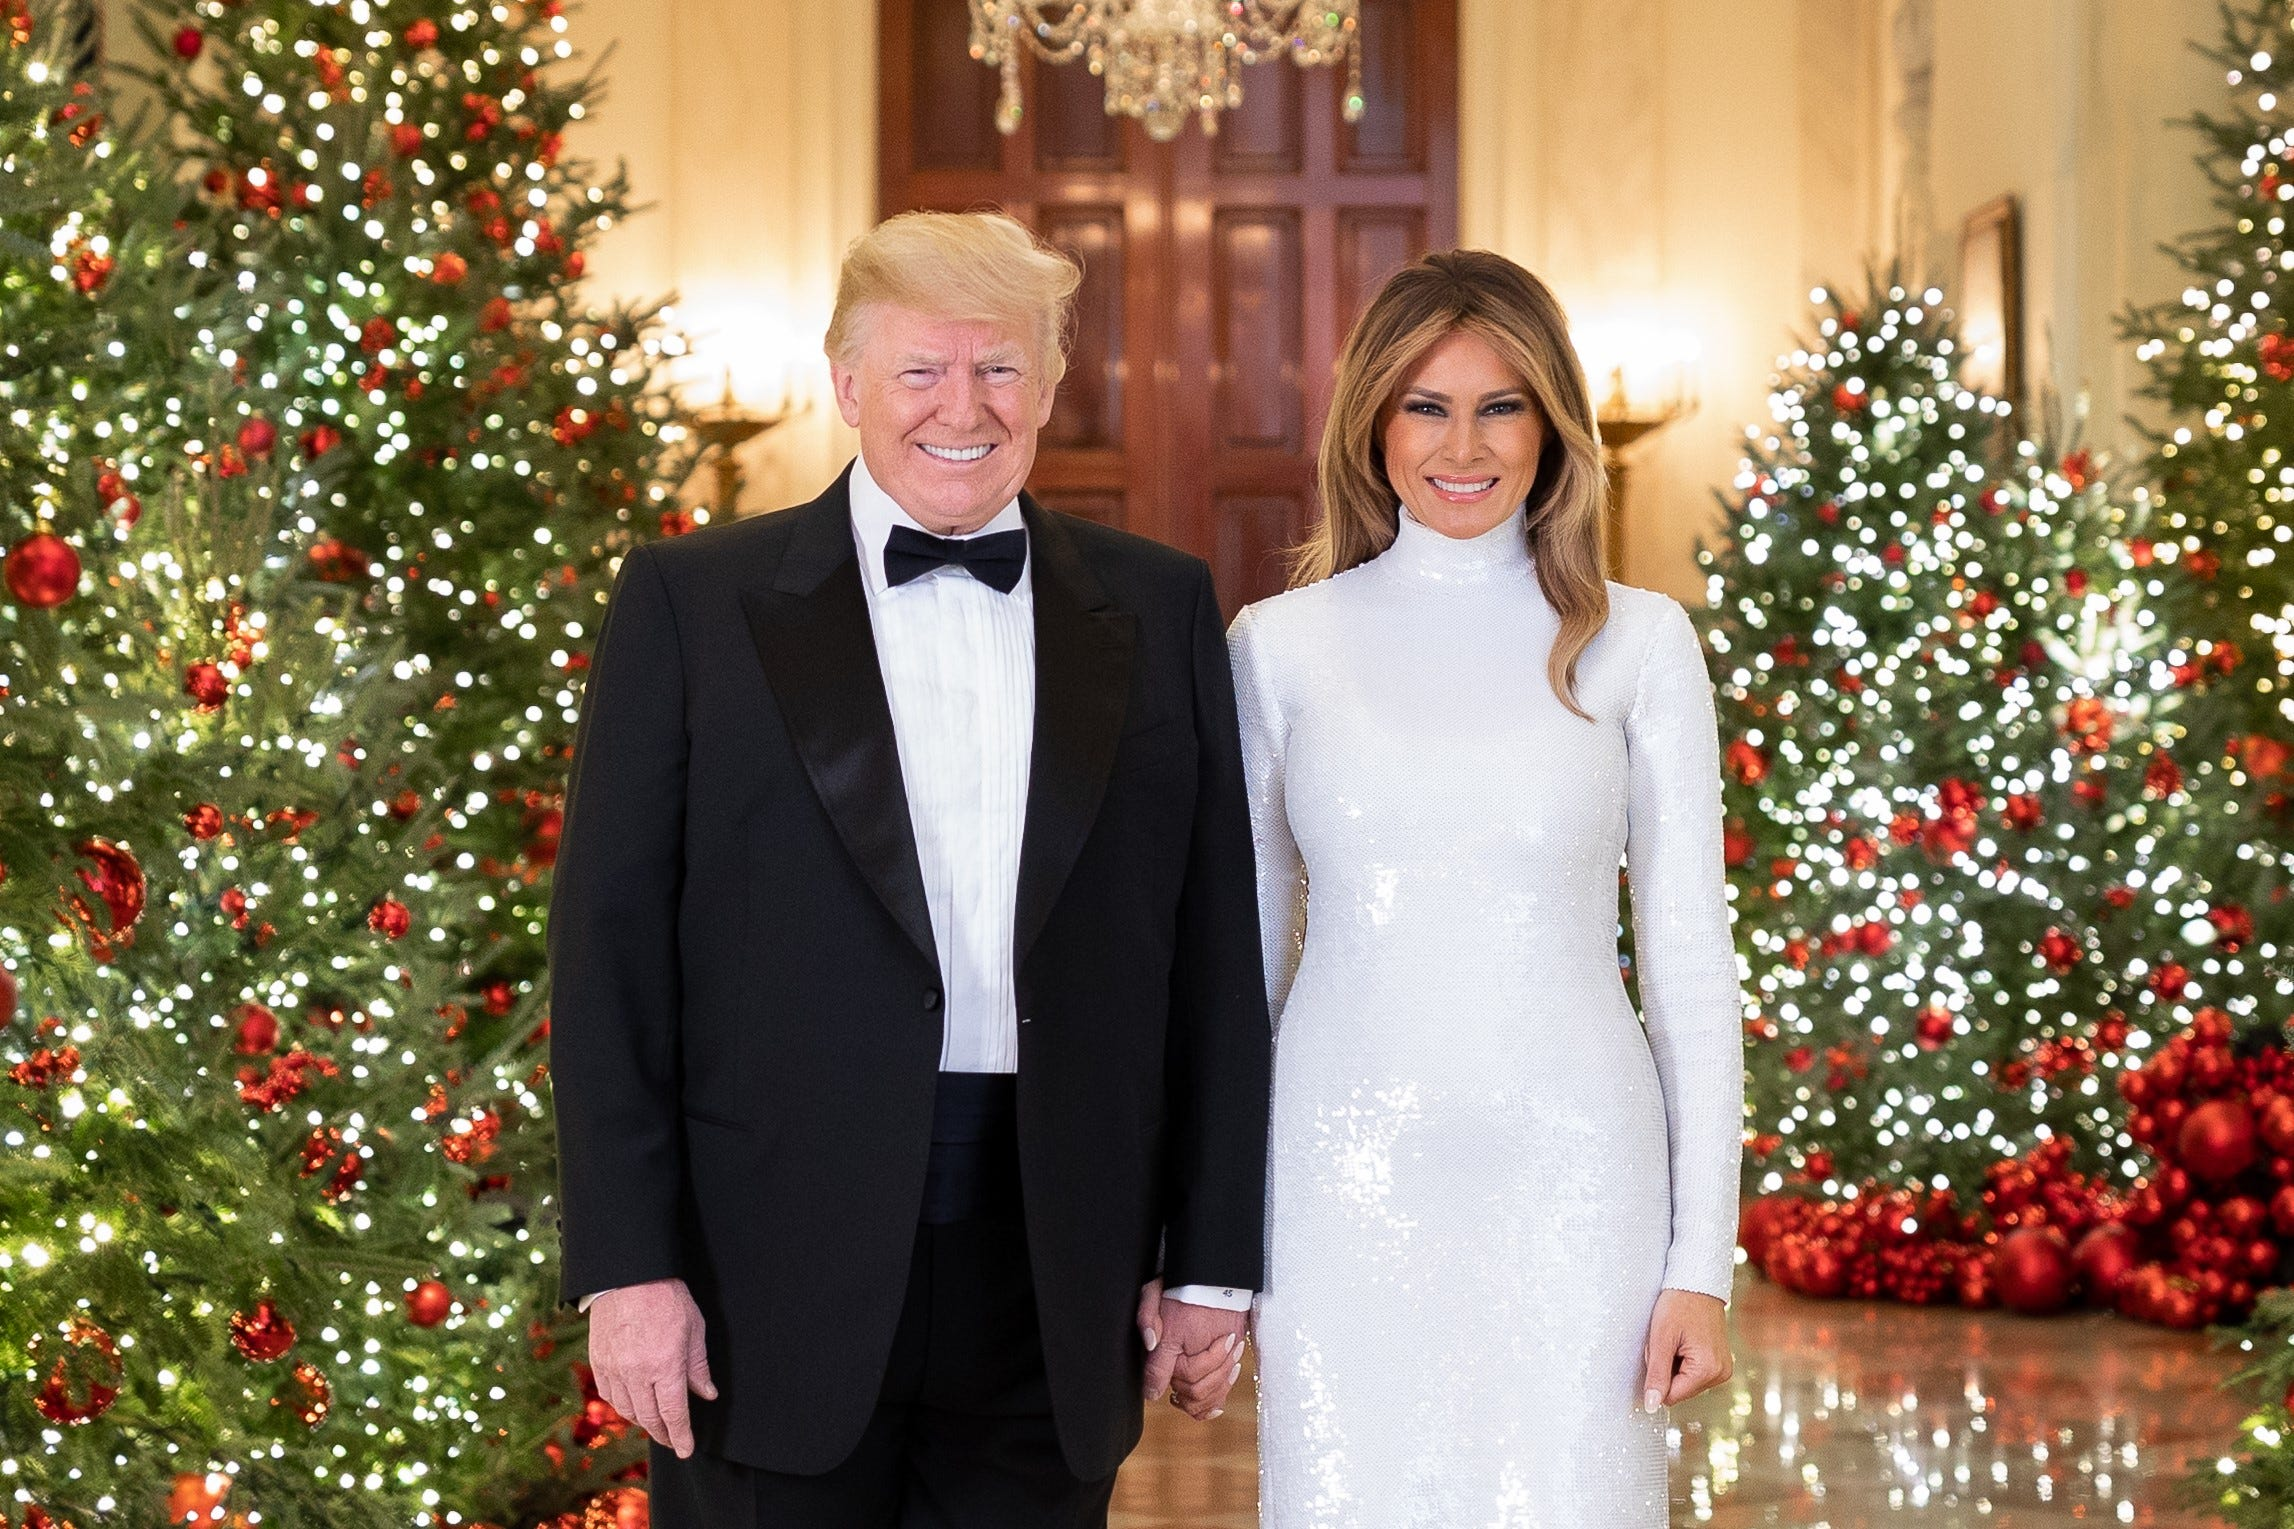 Donald Trump, Melania hold hands in official Christmas portrait